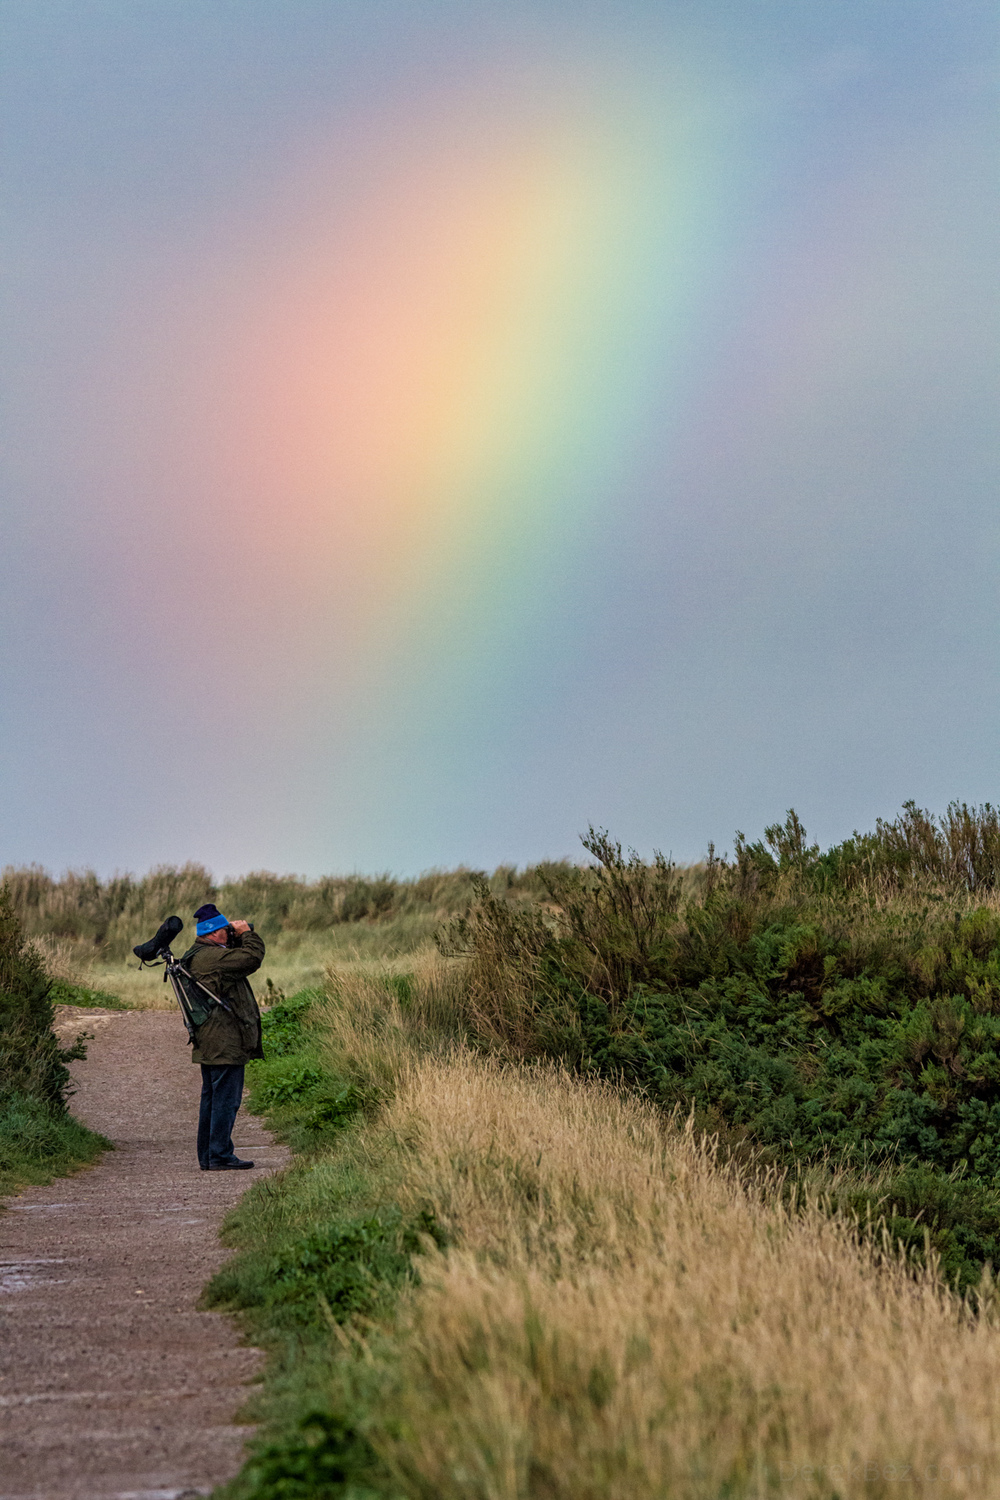 A man uses binoculars to watch birds while a rainbow illuminates the sky at RSPB Titchwell